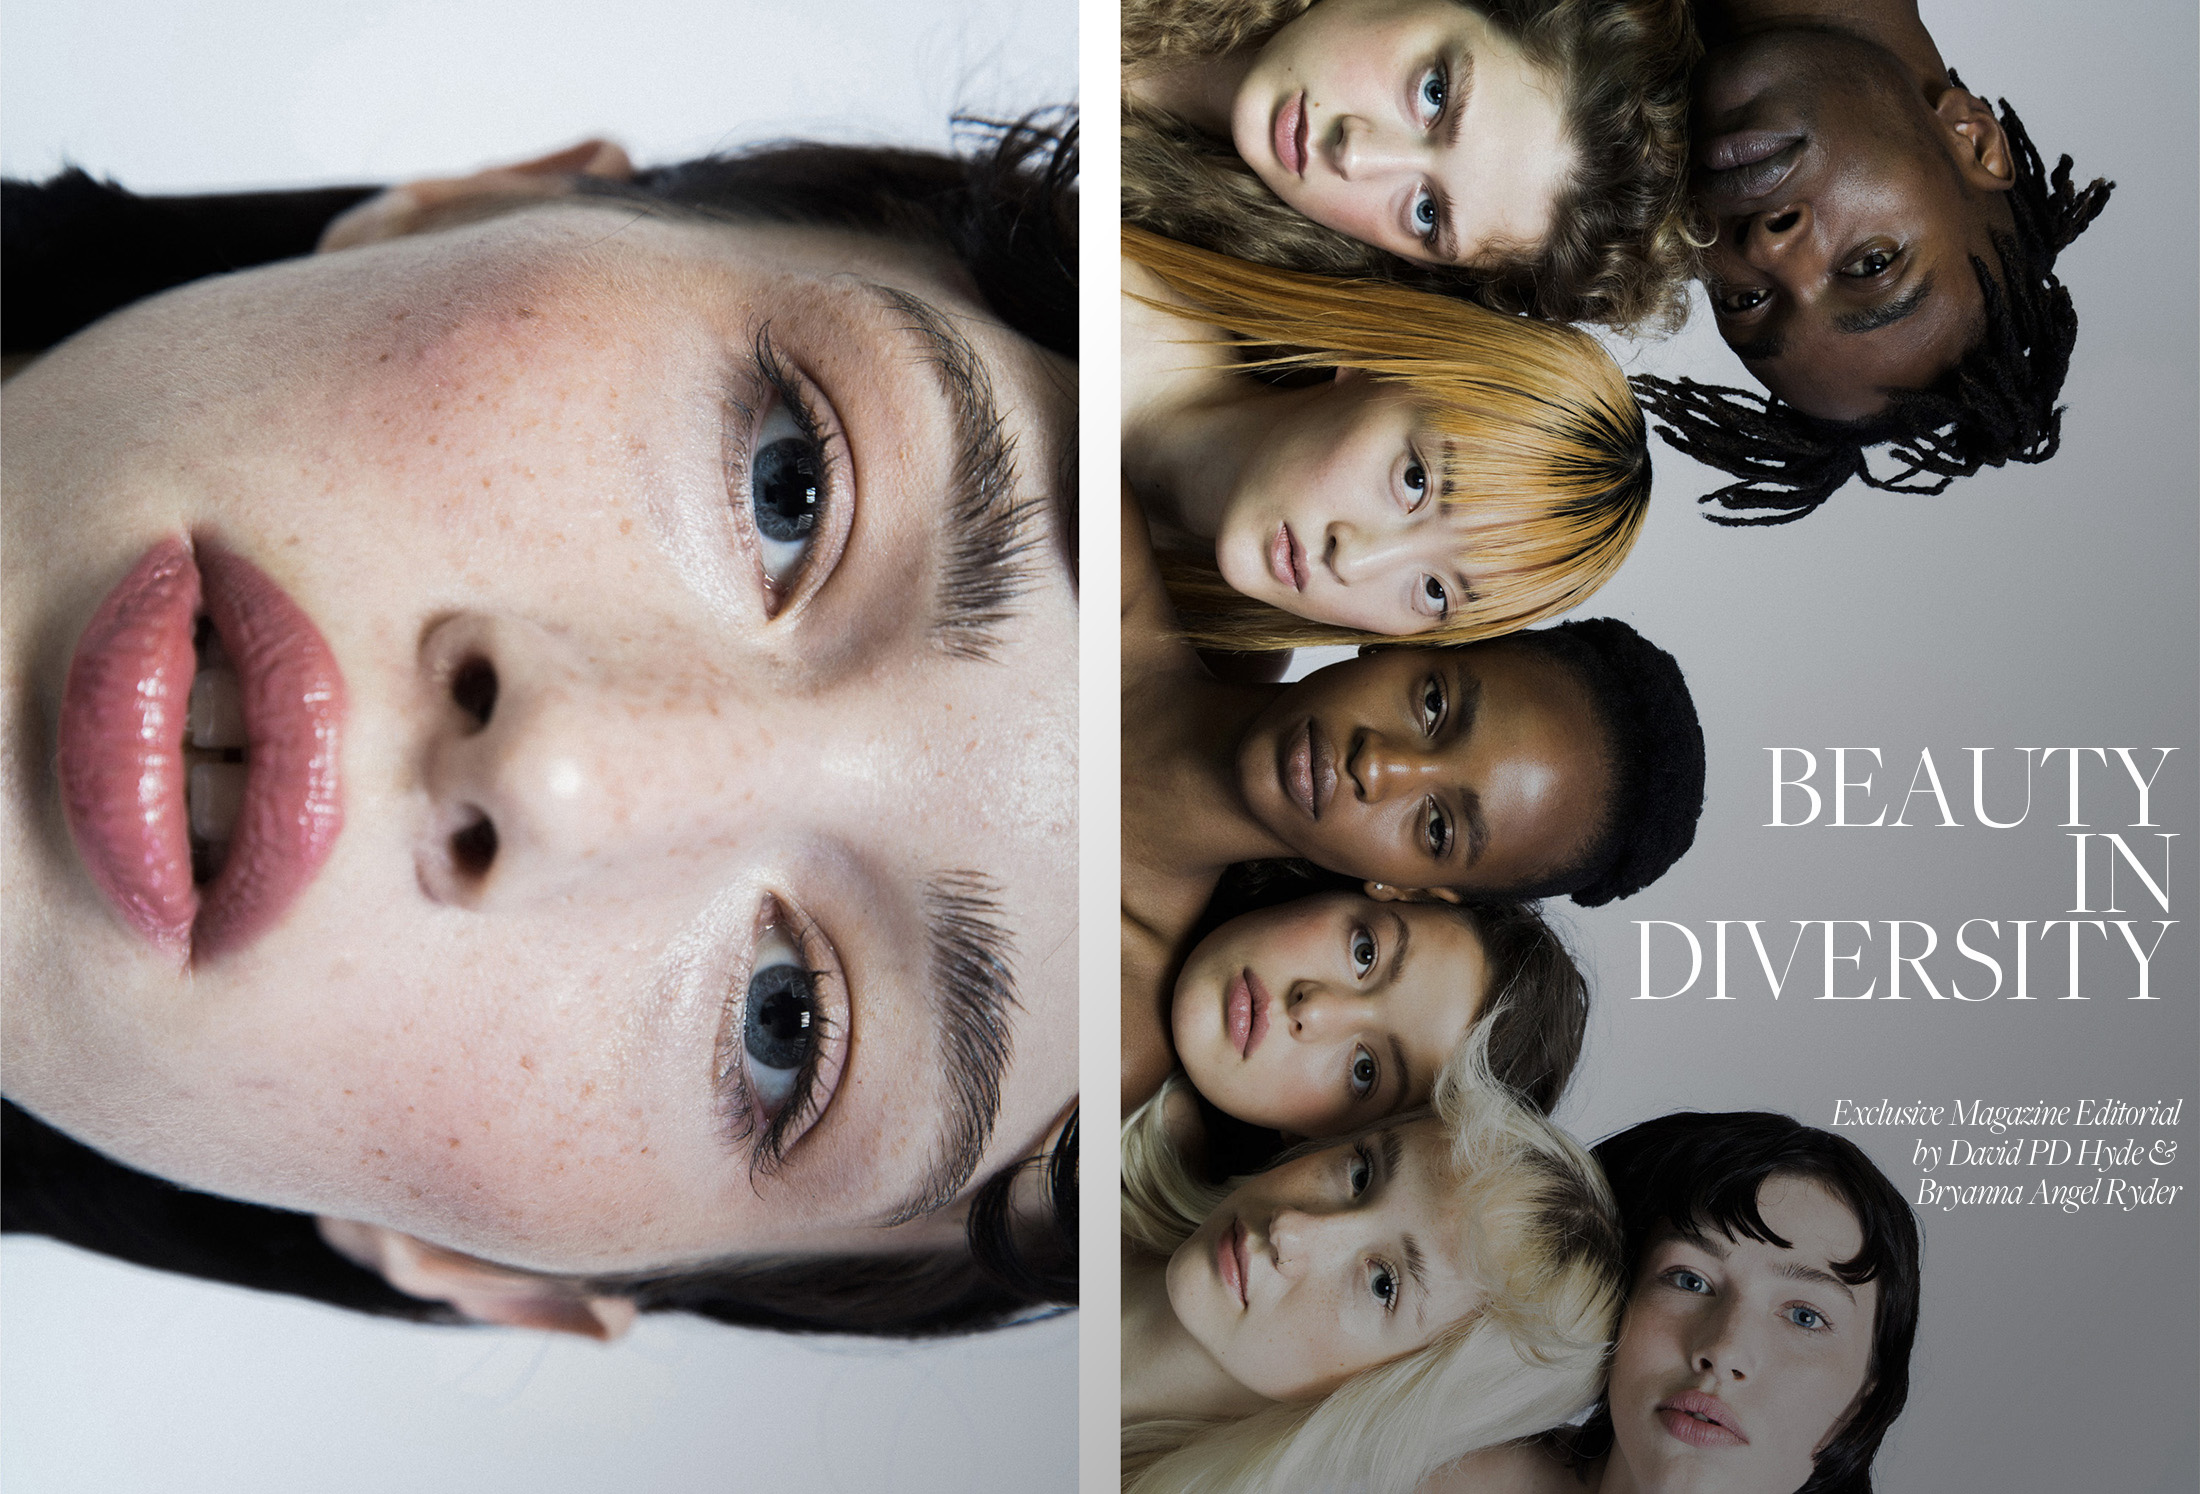 beauty-in-diversity-fashion-editorial-by-david-pd-hyde/